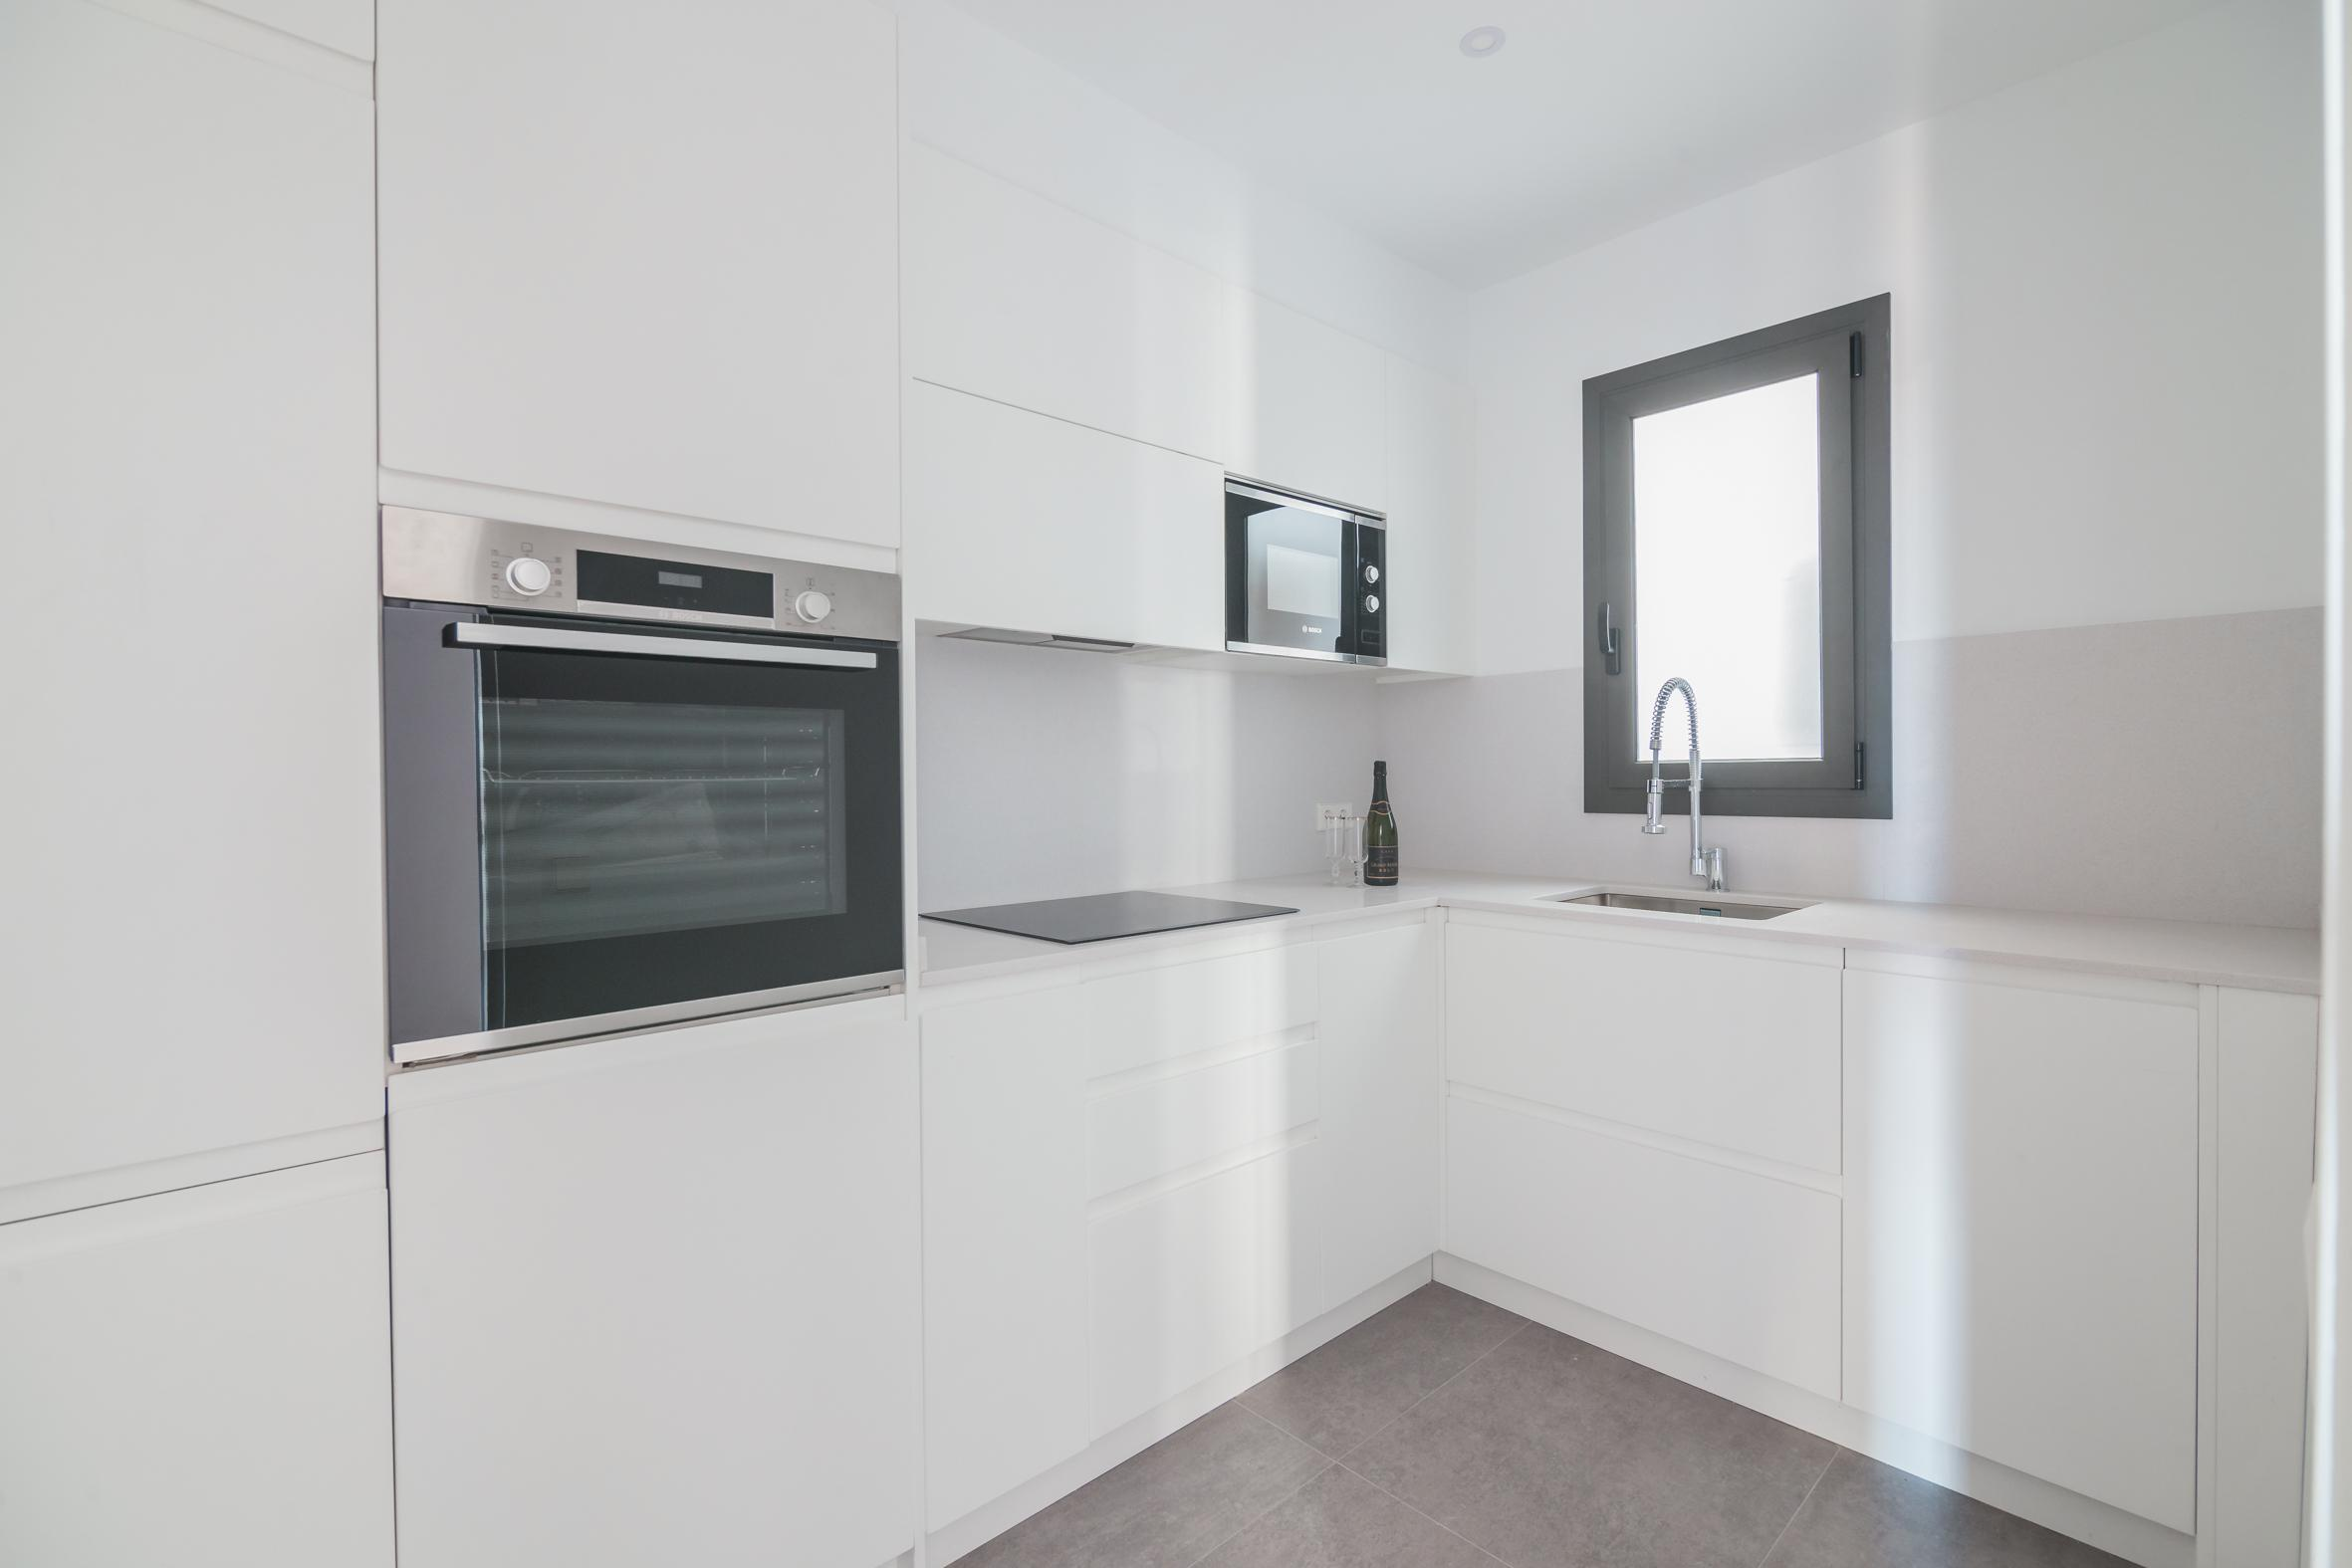 244010 Flat for sale in Ciutat Vella, Barri Gótic 4